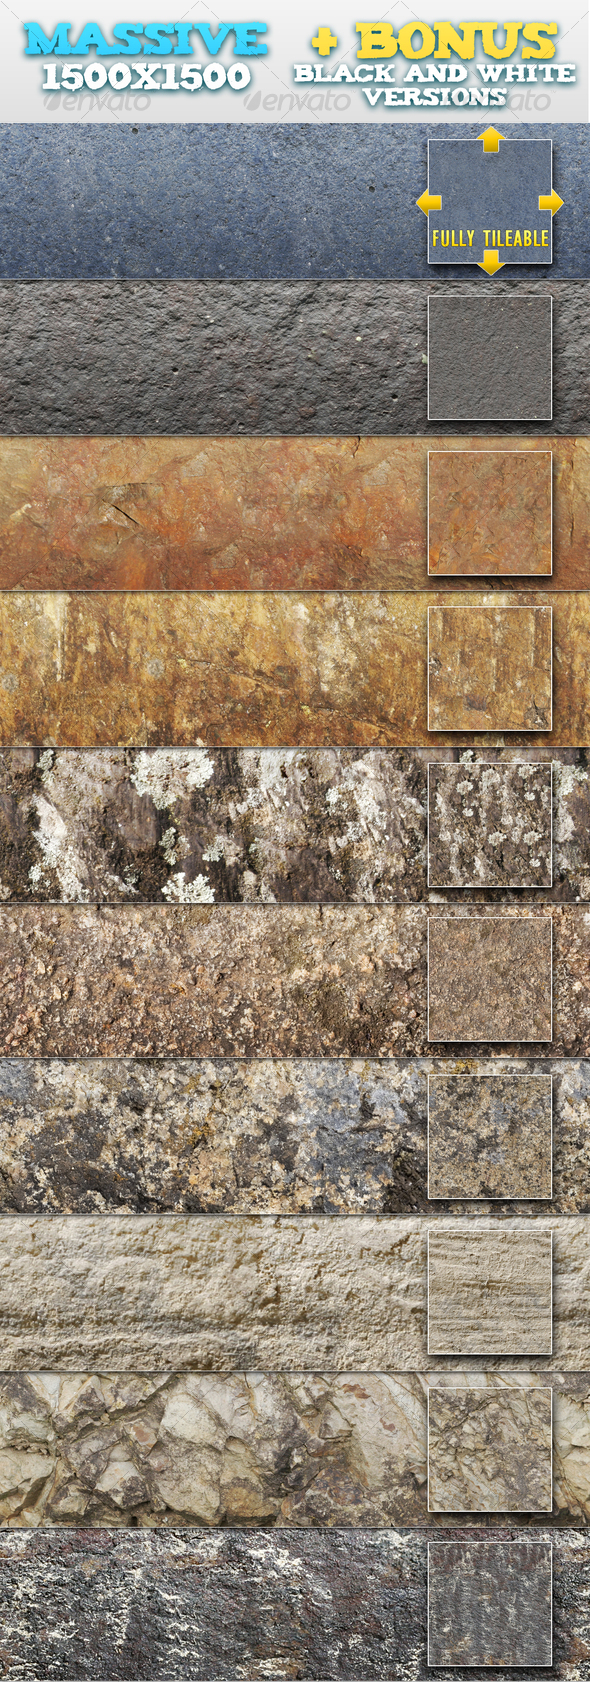 10 Natural Rock / Stone Patterns + BONUSES - Textures / Fills / Patterns Photoshop